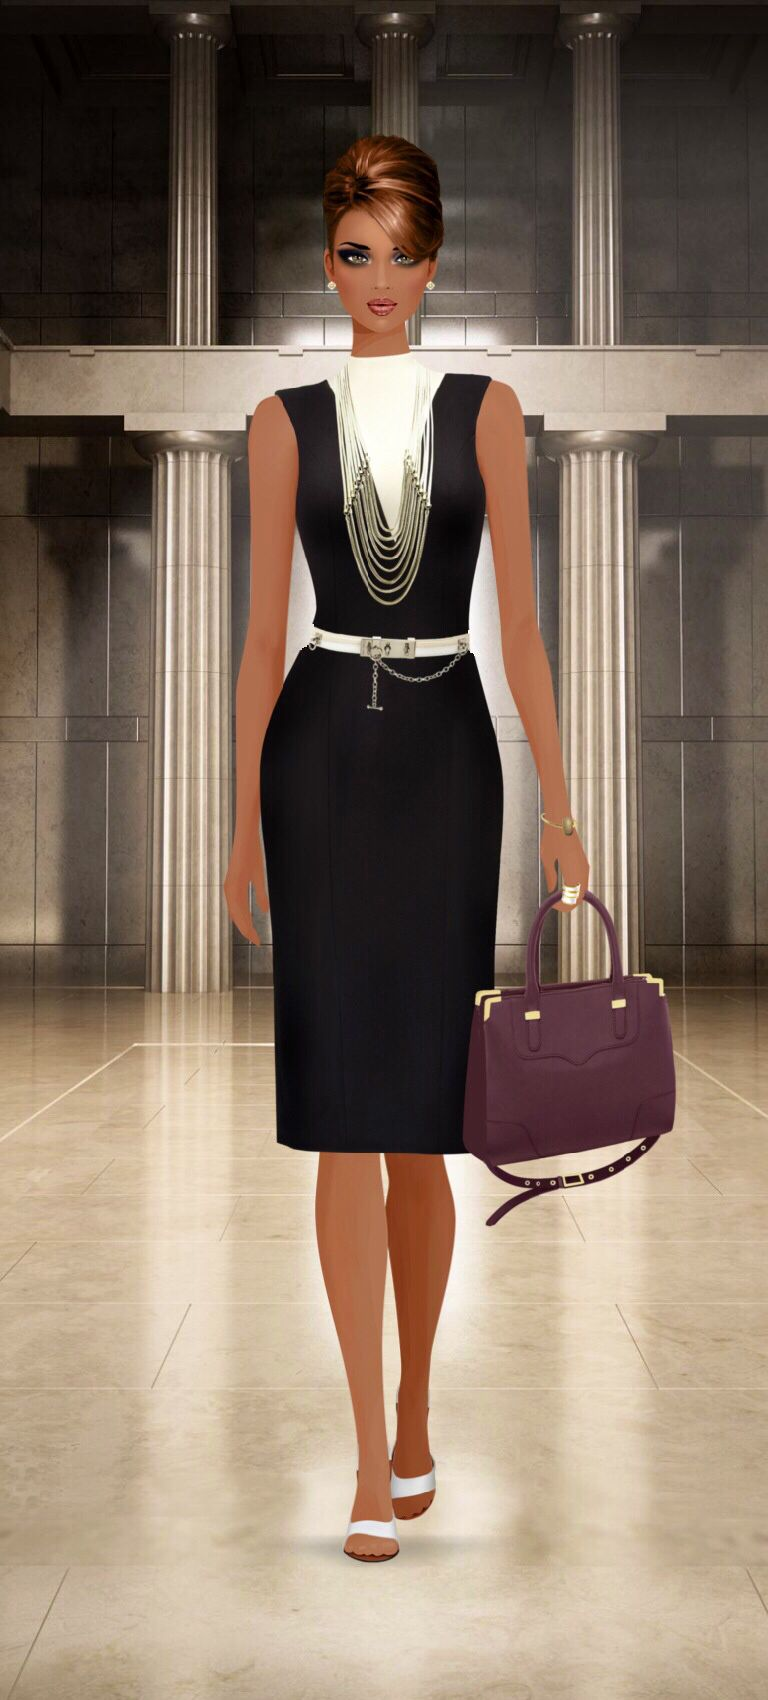 Dignitary Swearing-in Ceremony- 4 09/5 60 | Covet Fashion